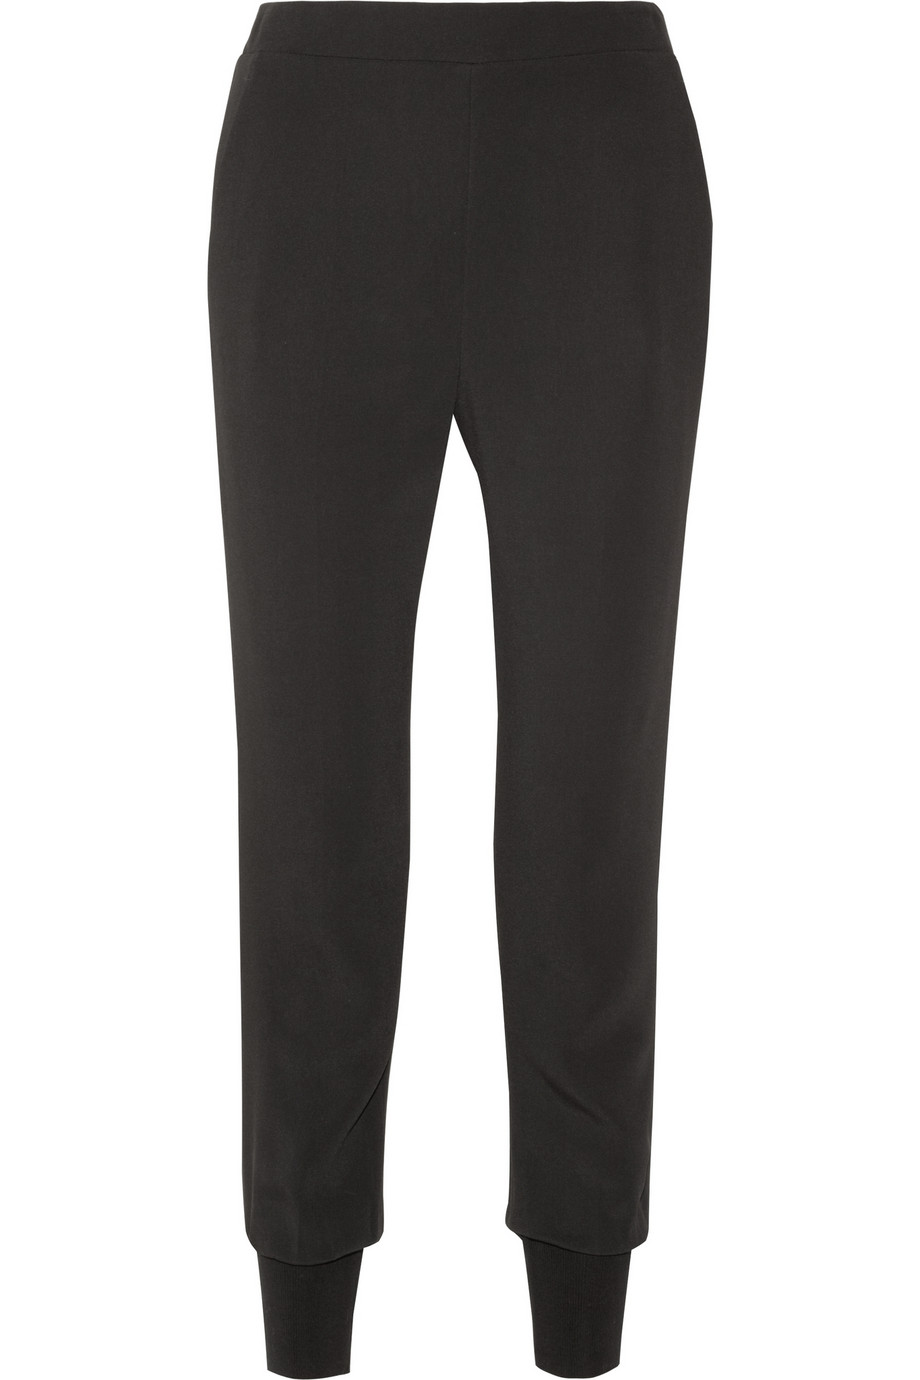 STELLA McCARTNEY  Julia Stretch-Cady Tapered Pants buy HERE